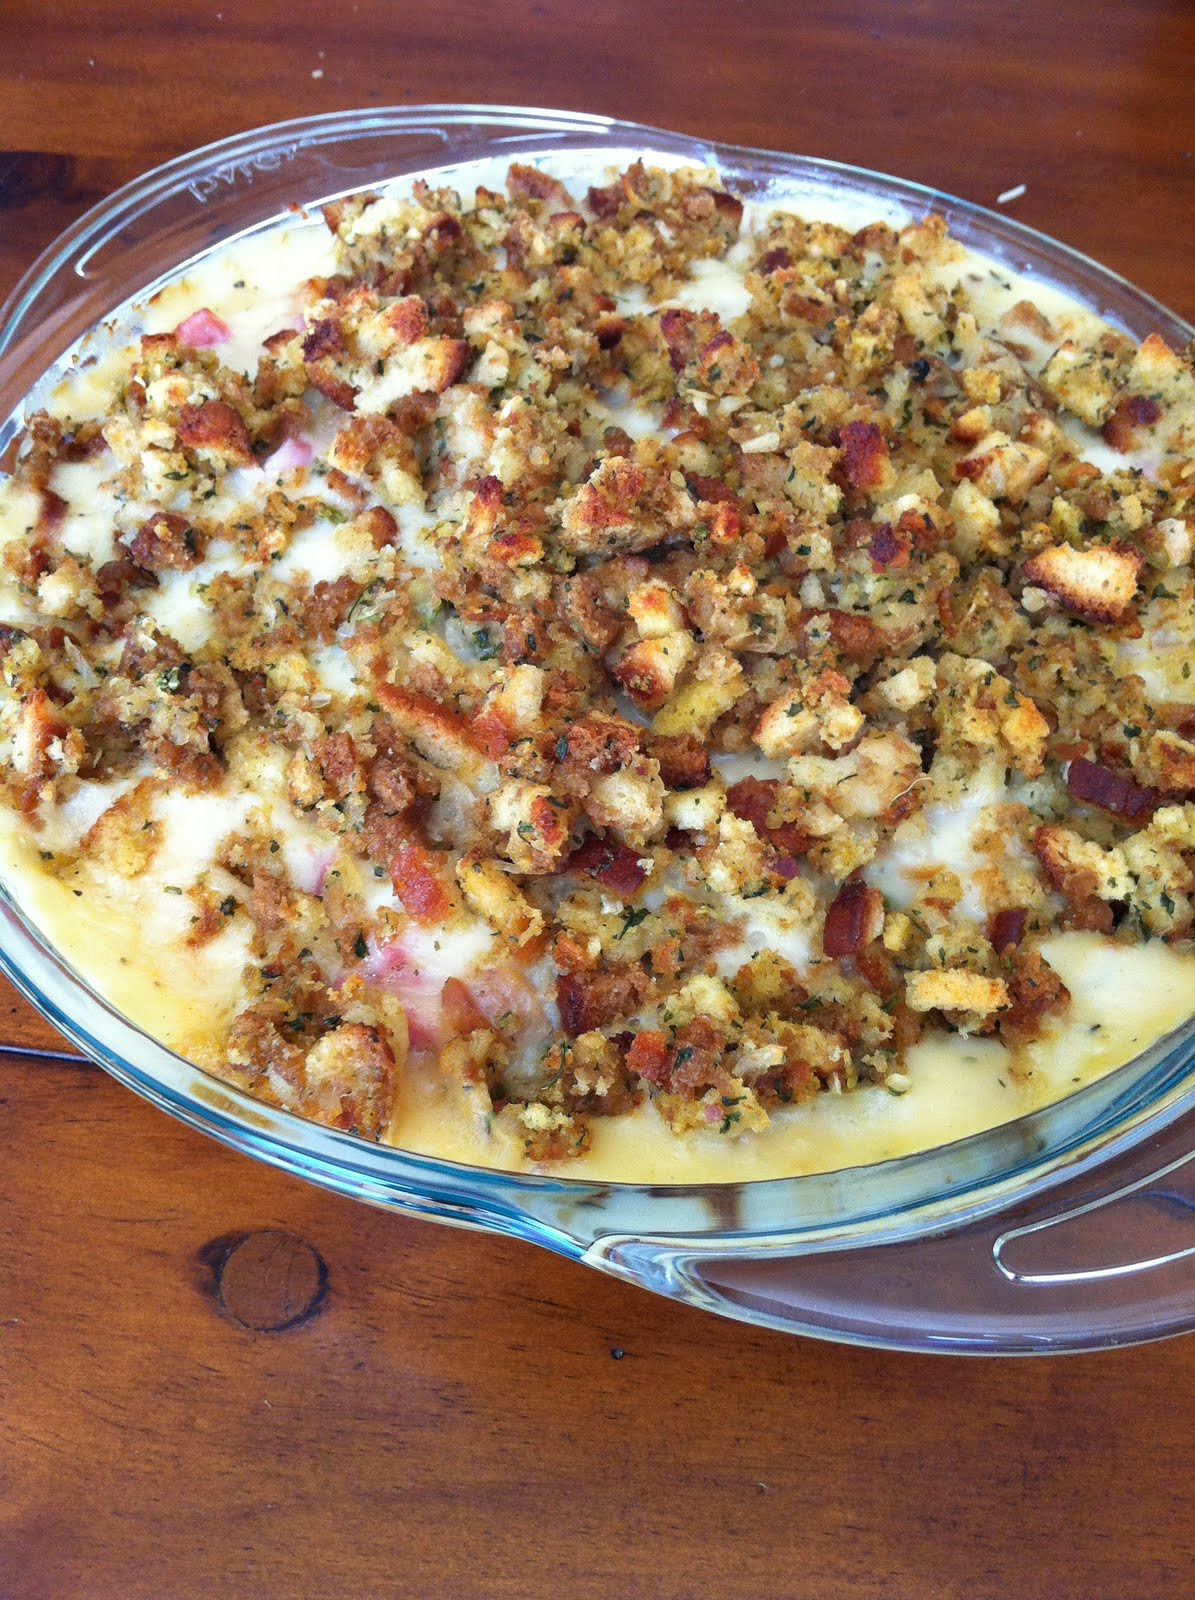 Dec 29, · The Perfect Keto Casserole. Casseroles are the epitome of an easy dinner. Put a bunch of food in a dish, pop it in the oven, and out comes a delicious dinner that everyone utorrent-movies.mlgs: 9.